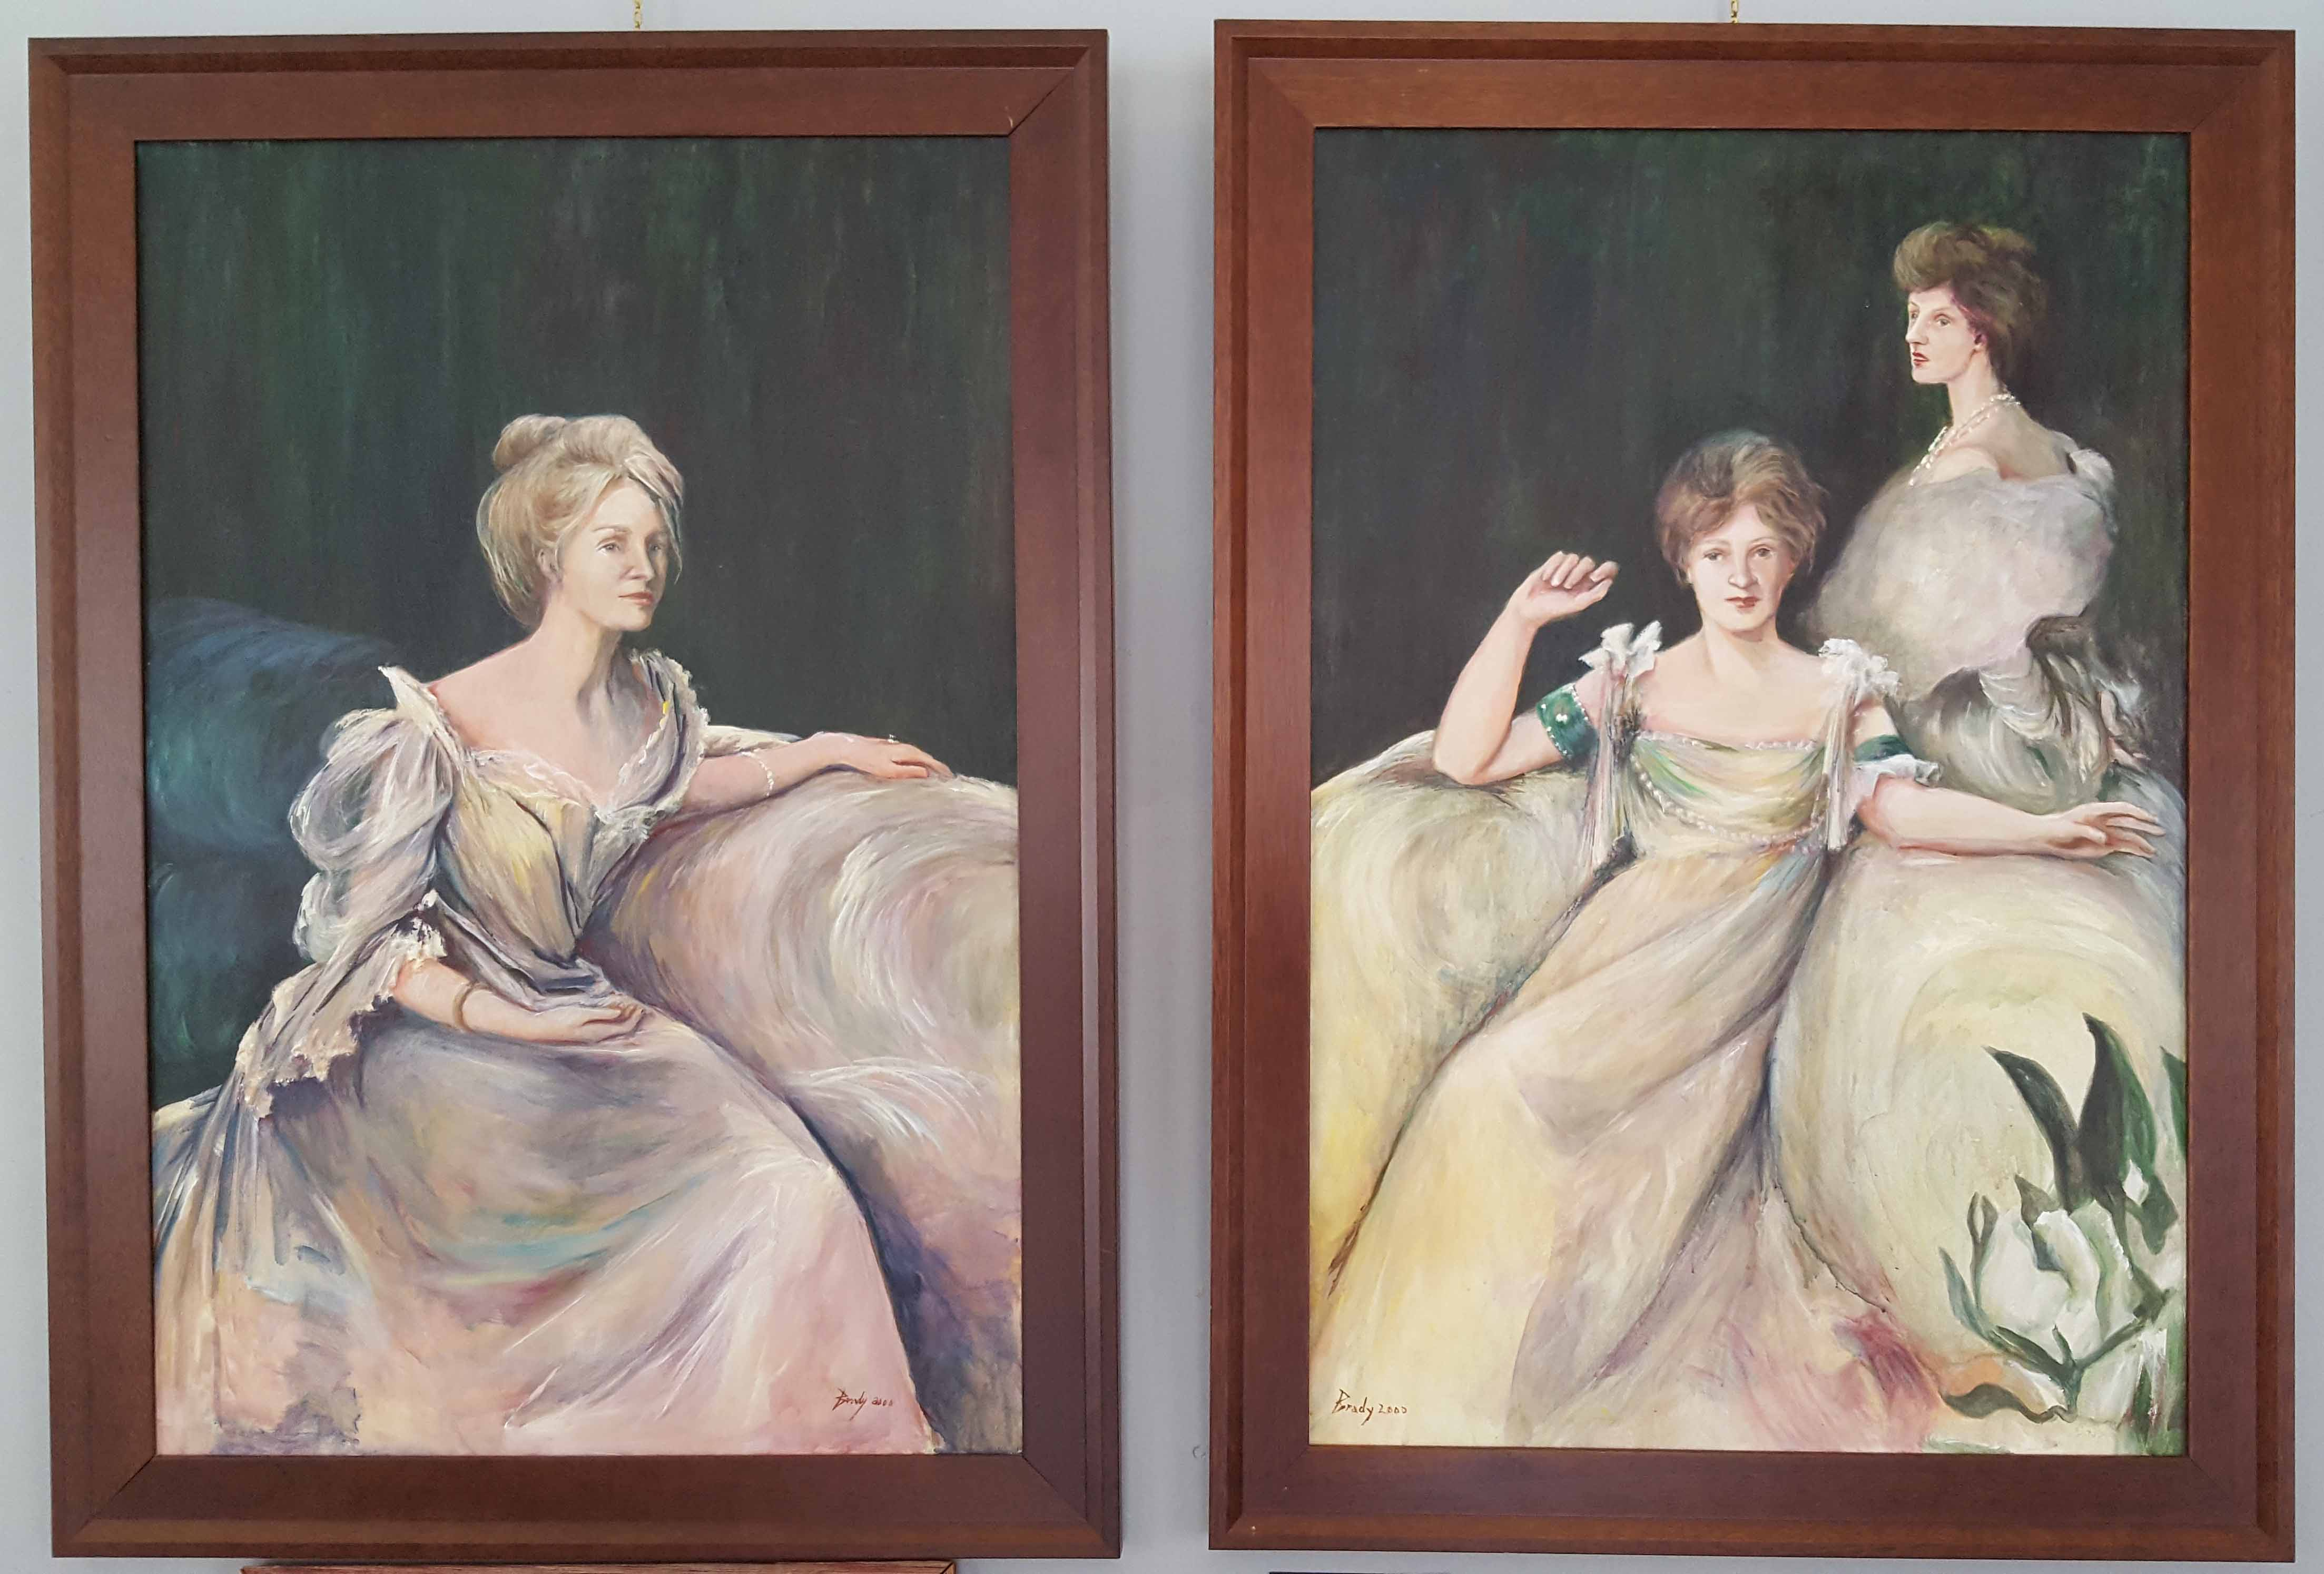 The Hadley Sisters diptych